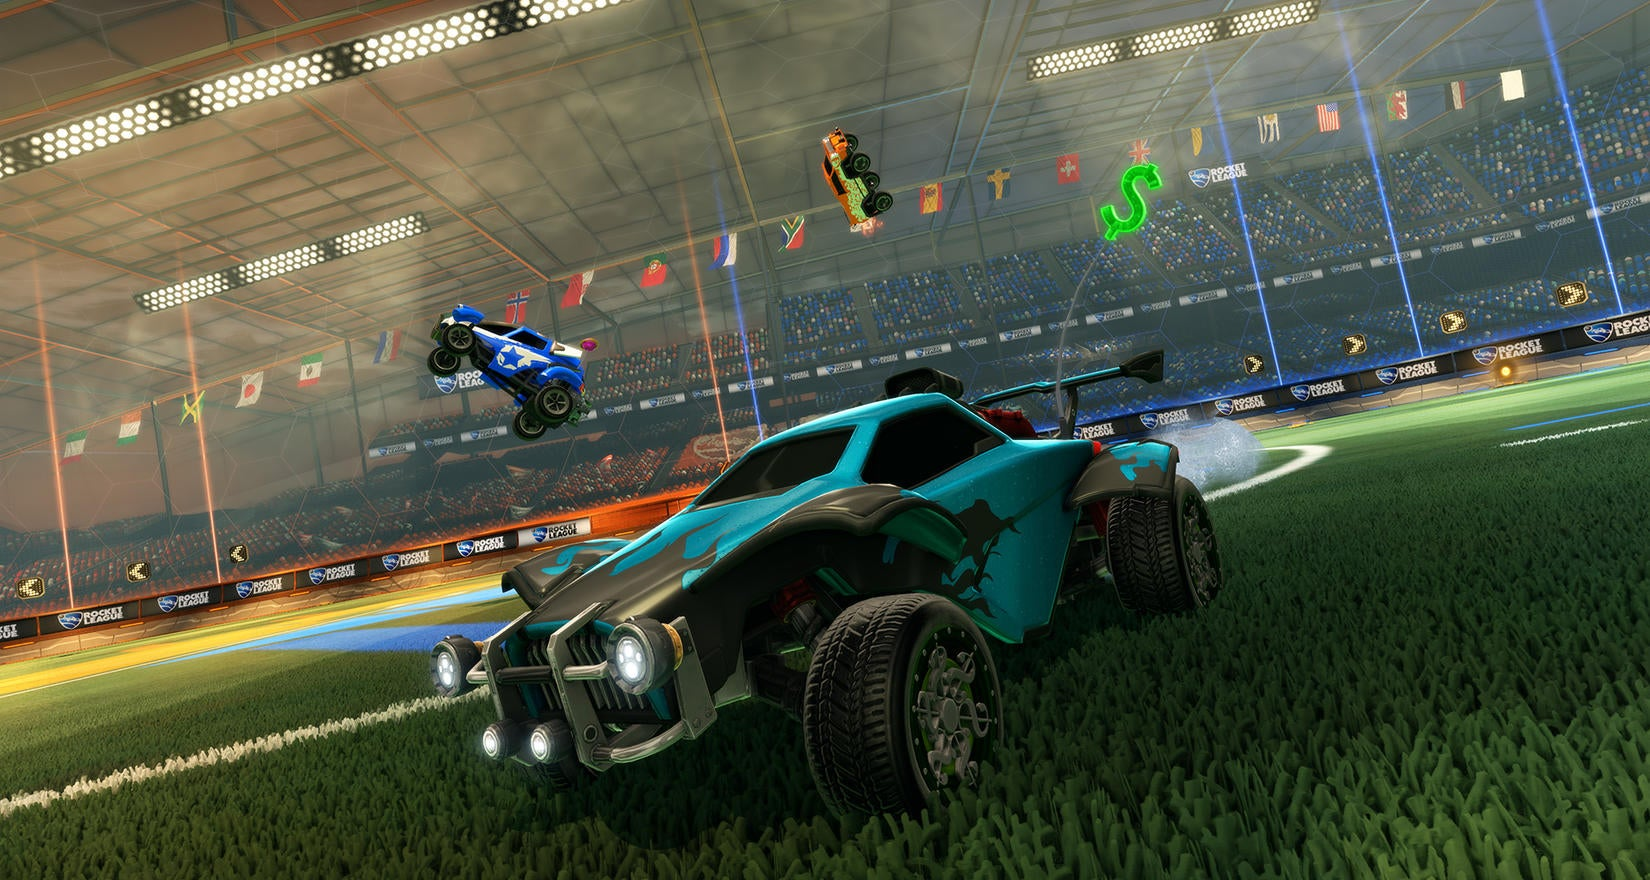 The Rocket League Championship Series is Back Image